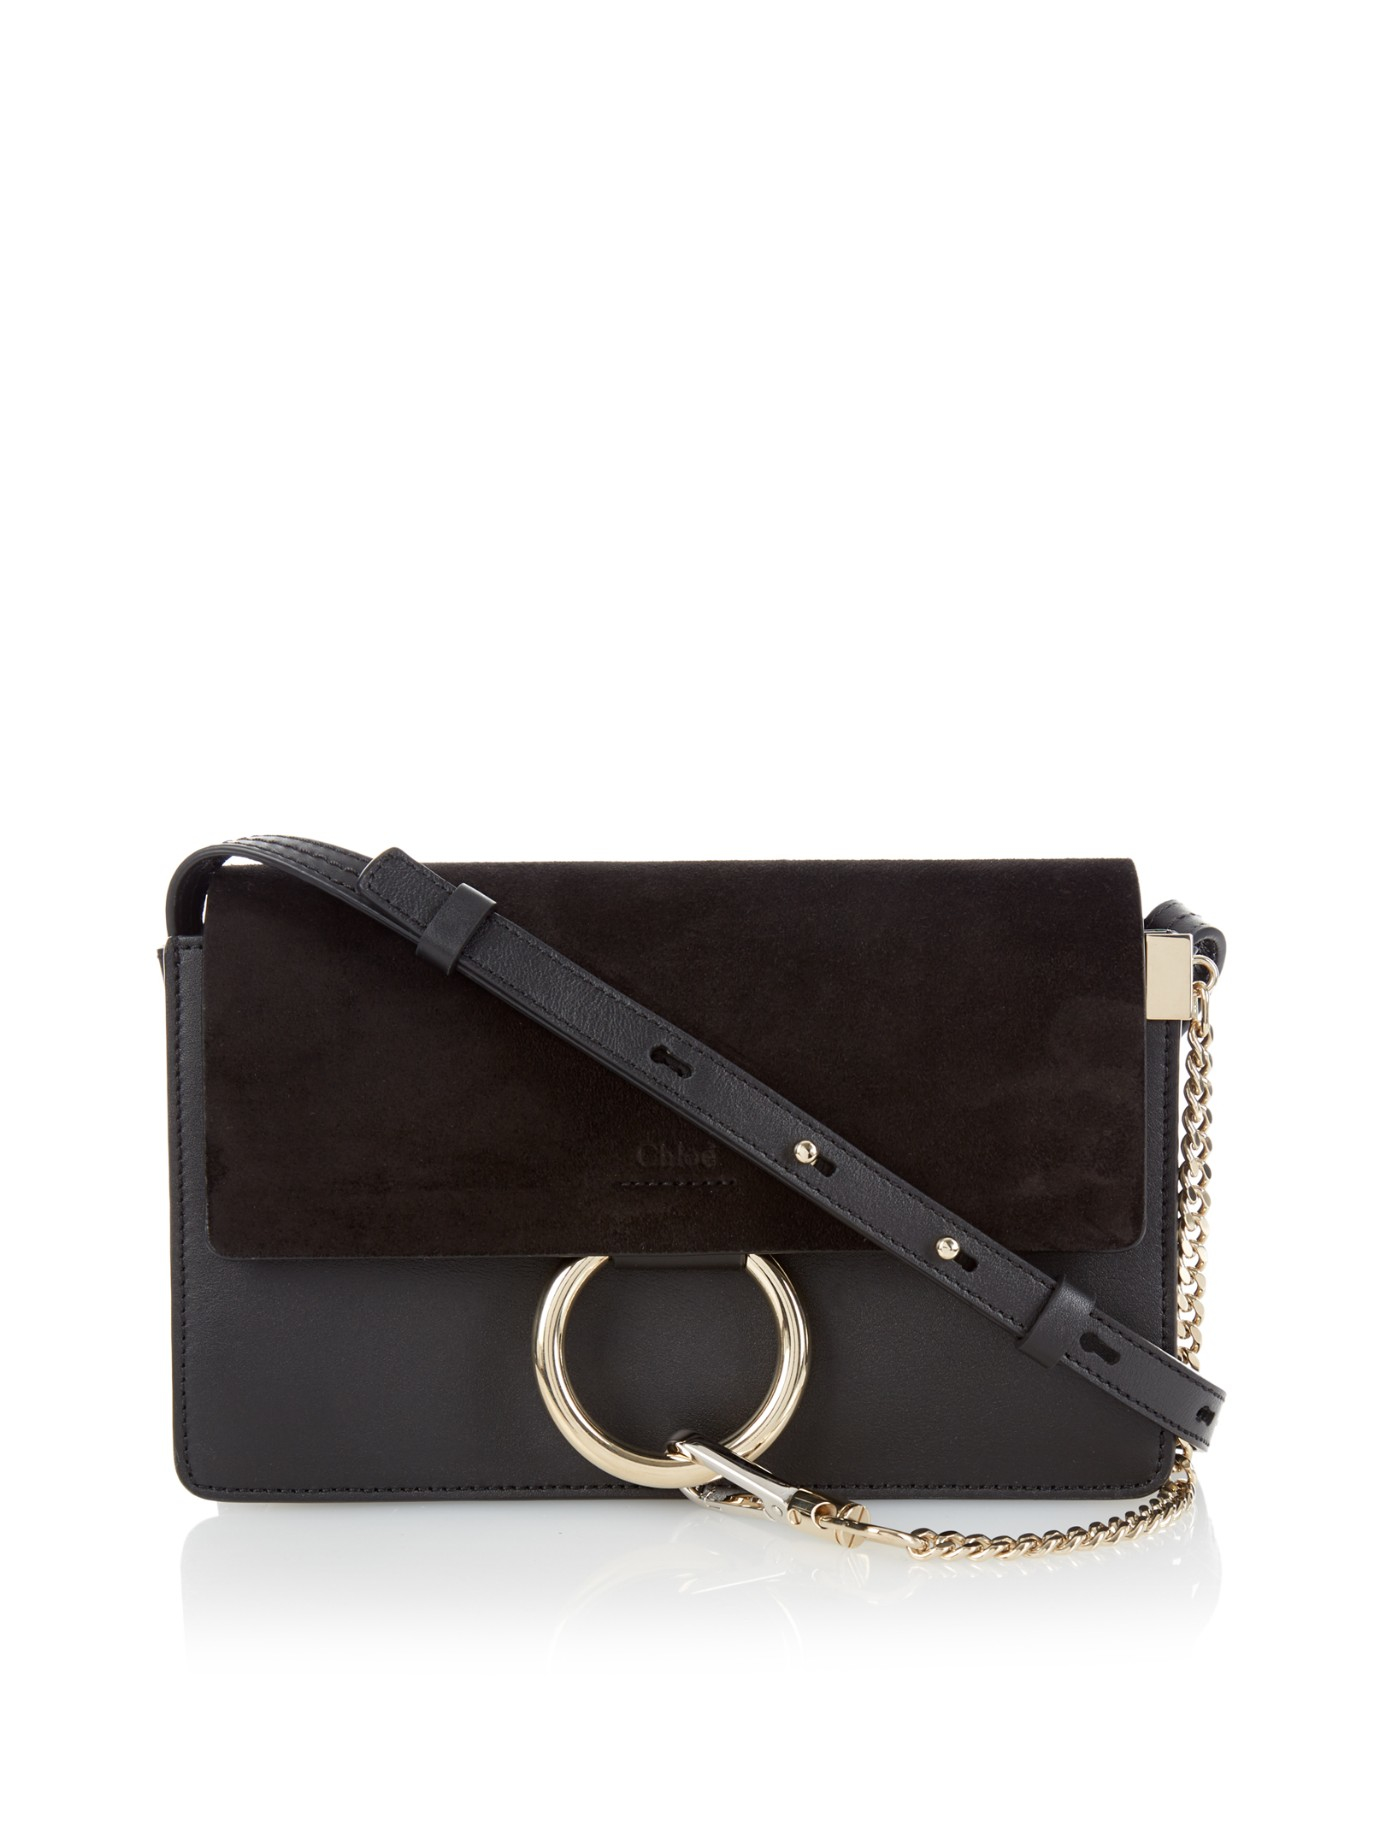 chloe faye small suede and leather cross-body bag